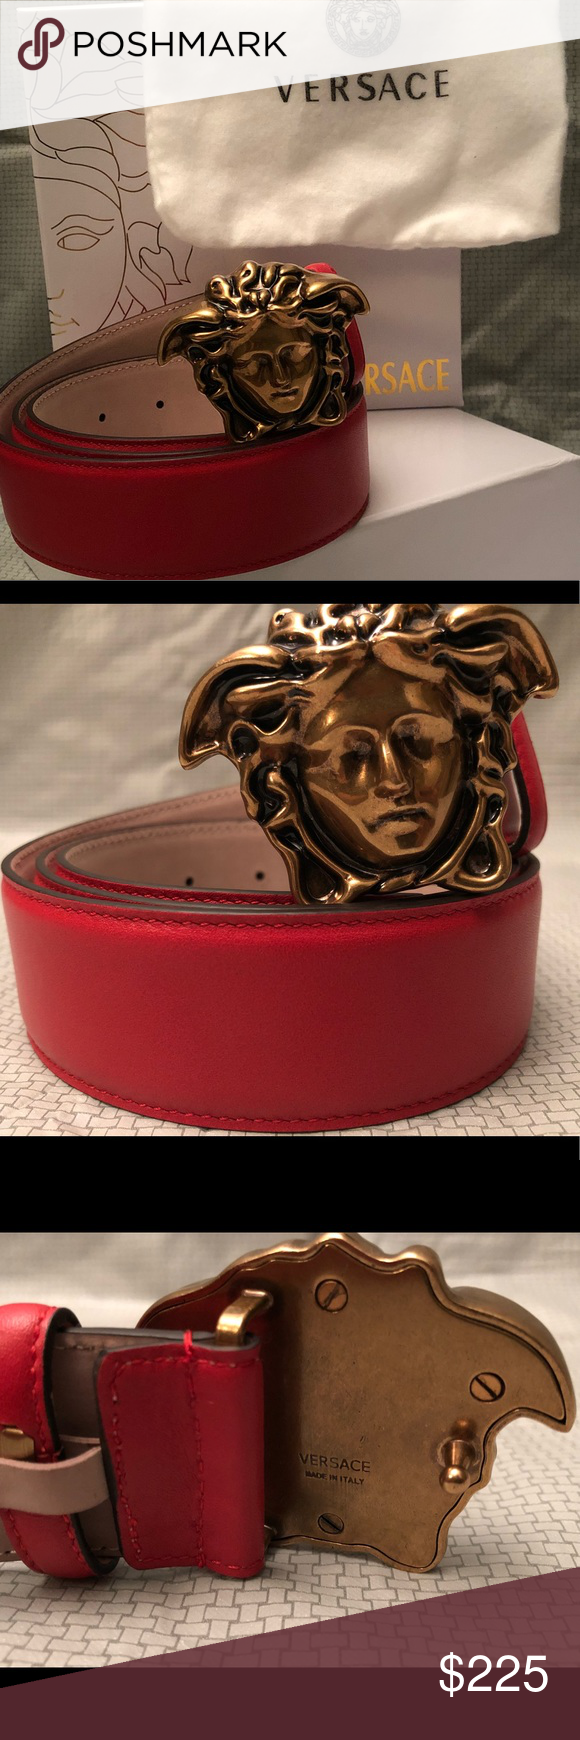 60878418d9cf Red Palazzo Versace Belt 100% Leather Belt Iconic Gold Medusa Buckle Men s  size 30-32 Versace Accessories Belts